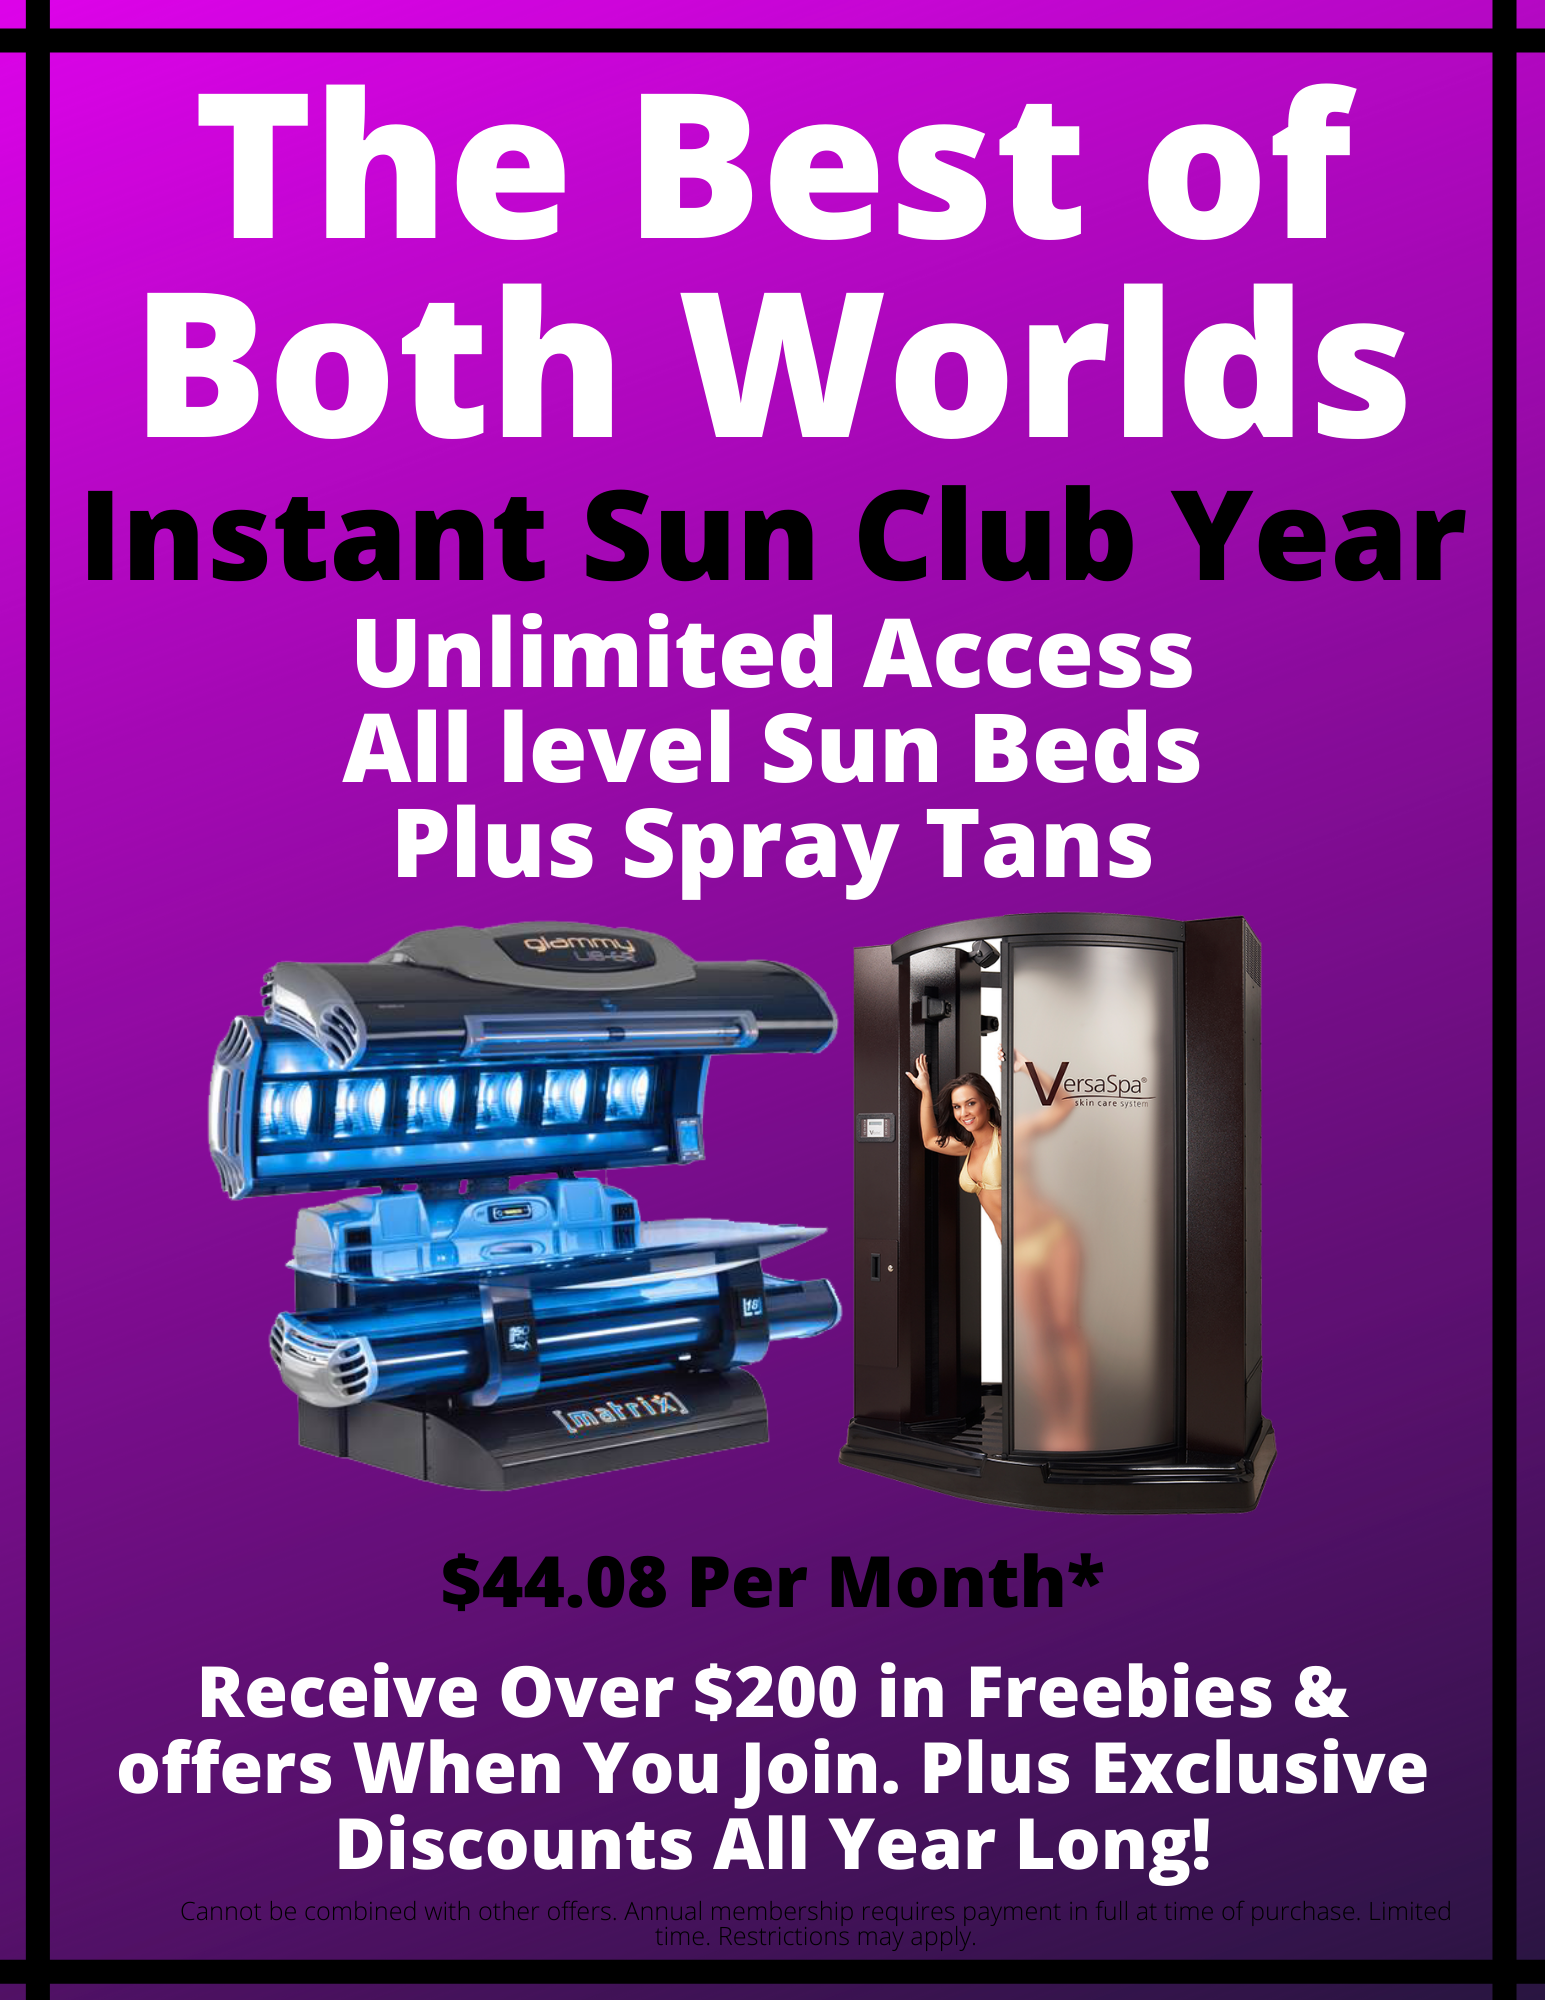 BEST OF BOTH WORLDS instant - All levels sunbeds+ spray tans= $529 breaks down to $44.08 show pics of beds and Versa Bottom list $200 in offers _ 1_3 of rooms